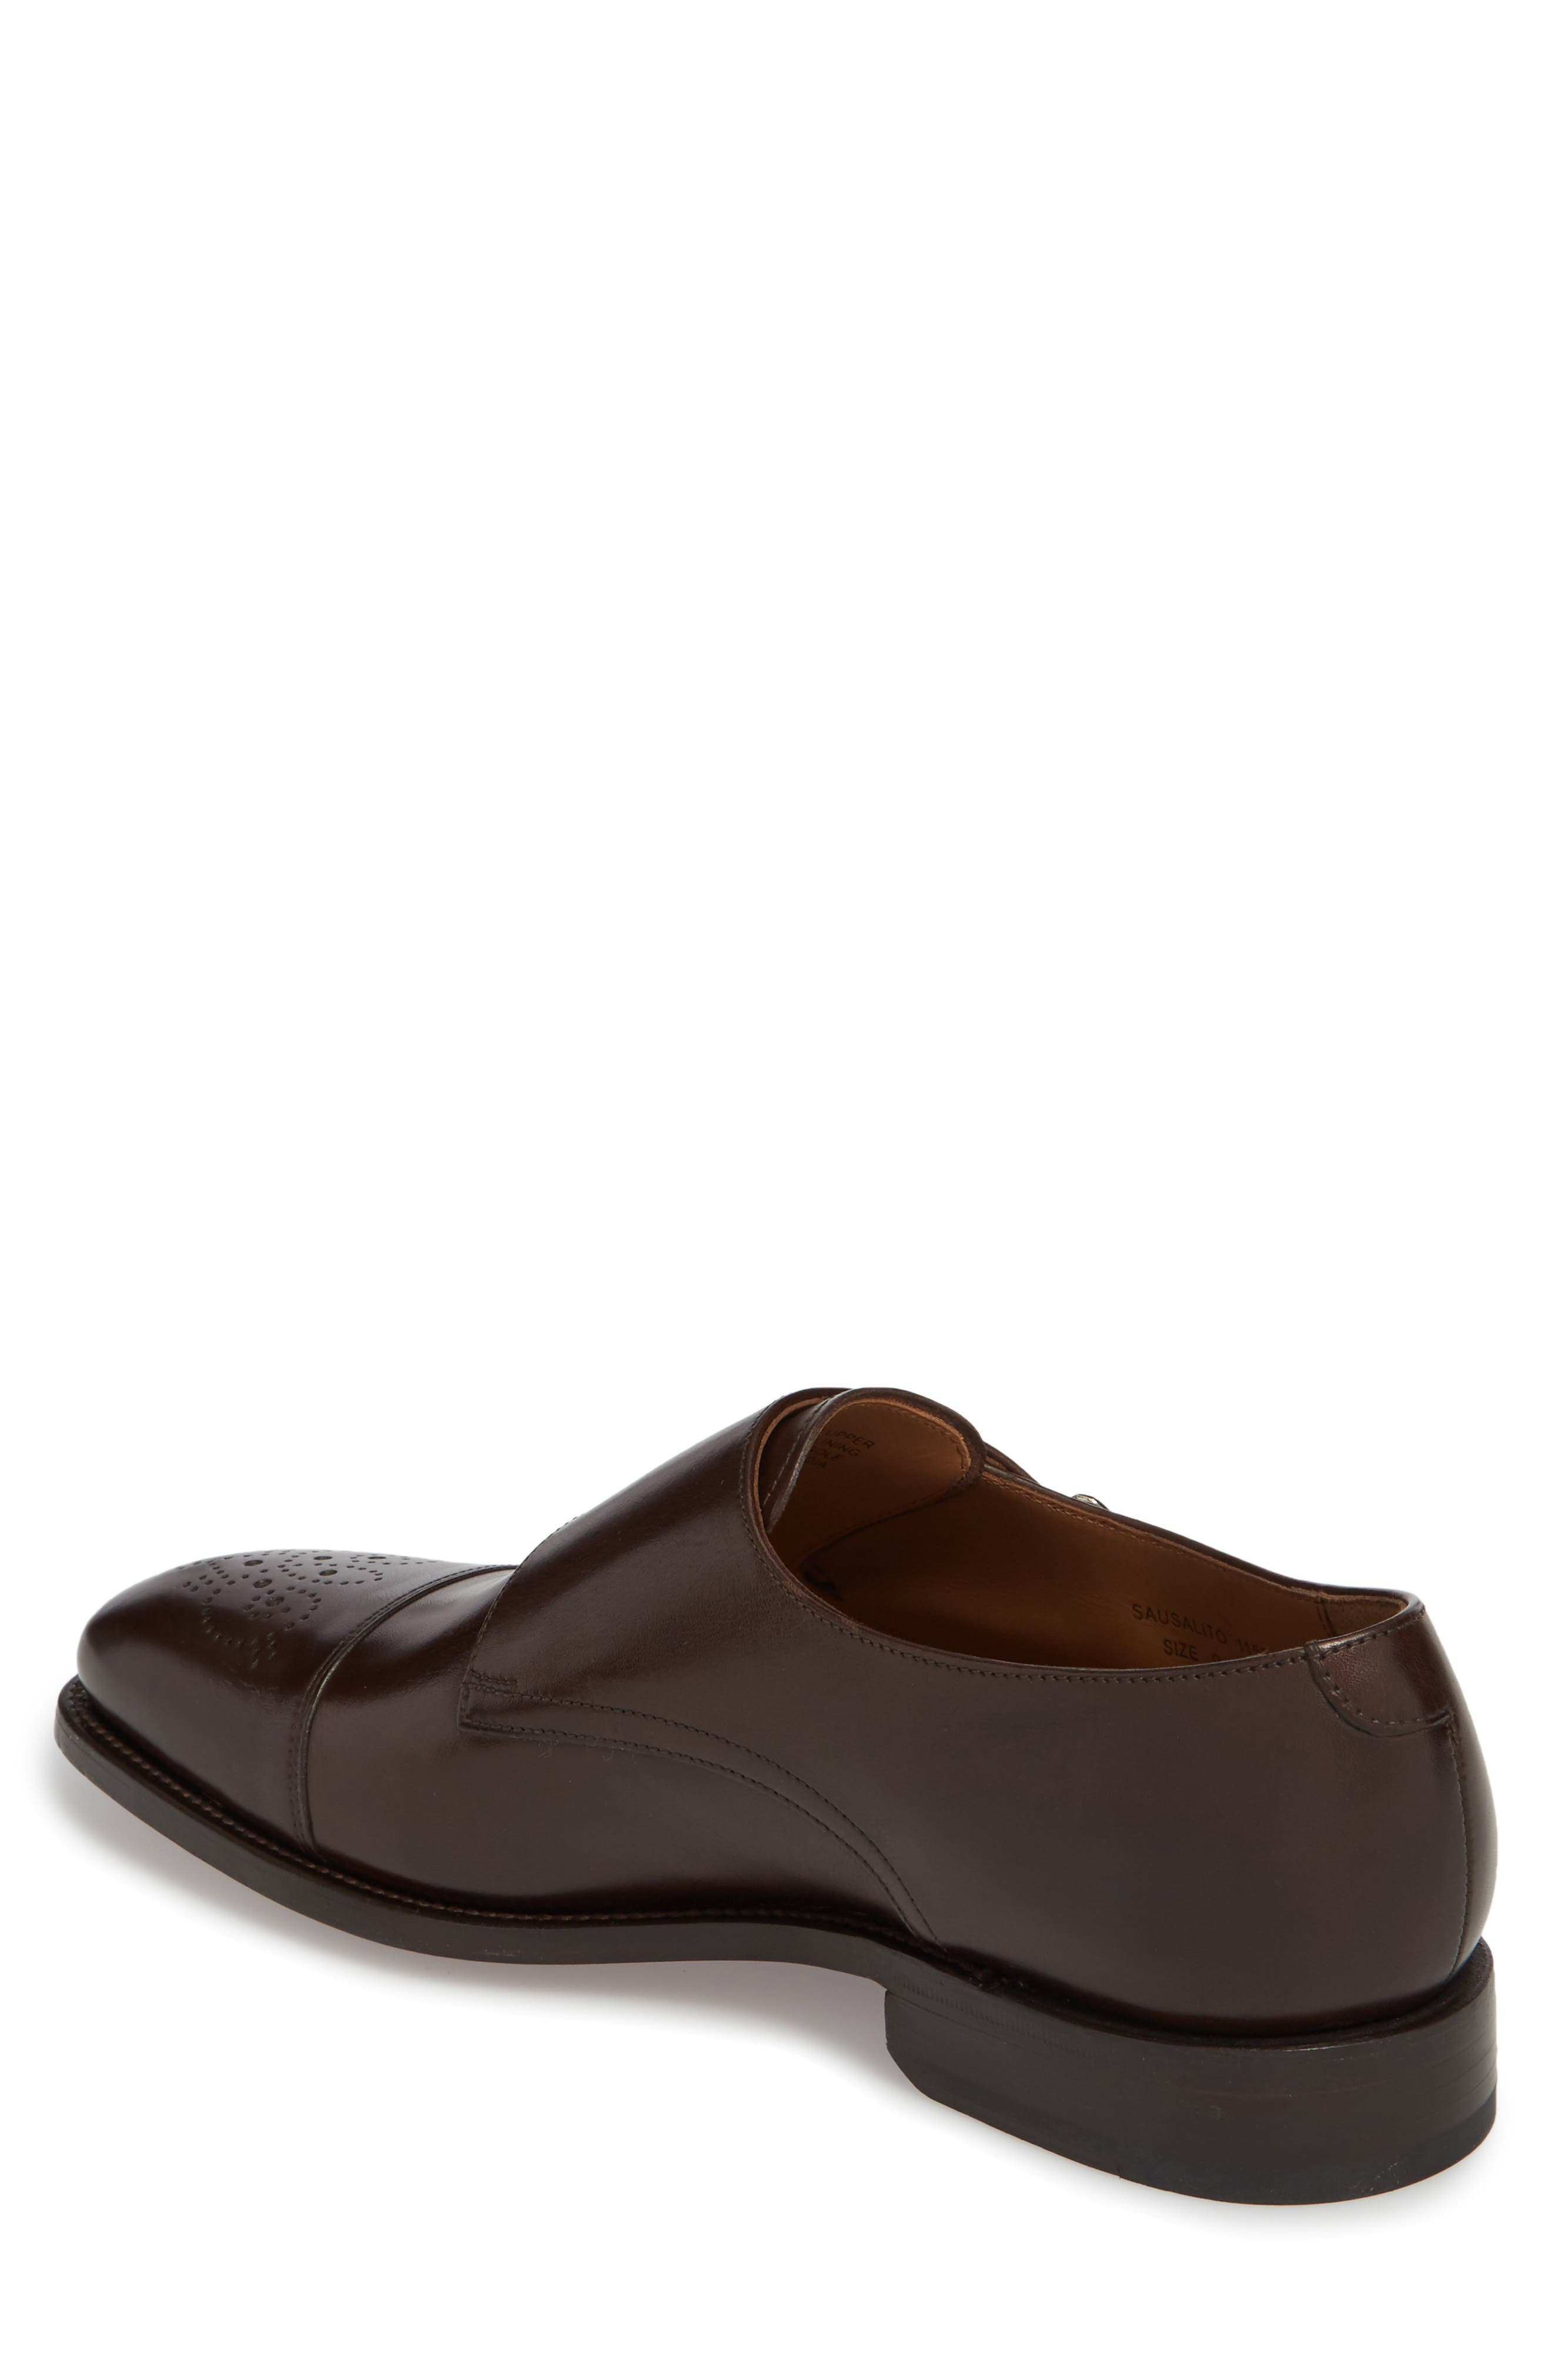 Sausalito Double Monk Strap Shoe,                             Alternate thumbnail 2, color,                             Coffee